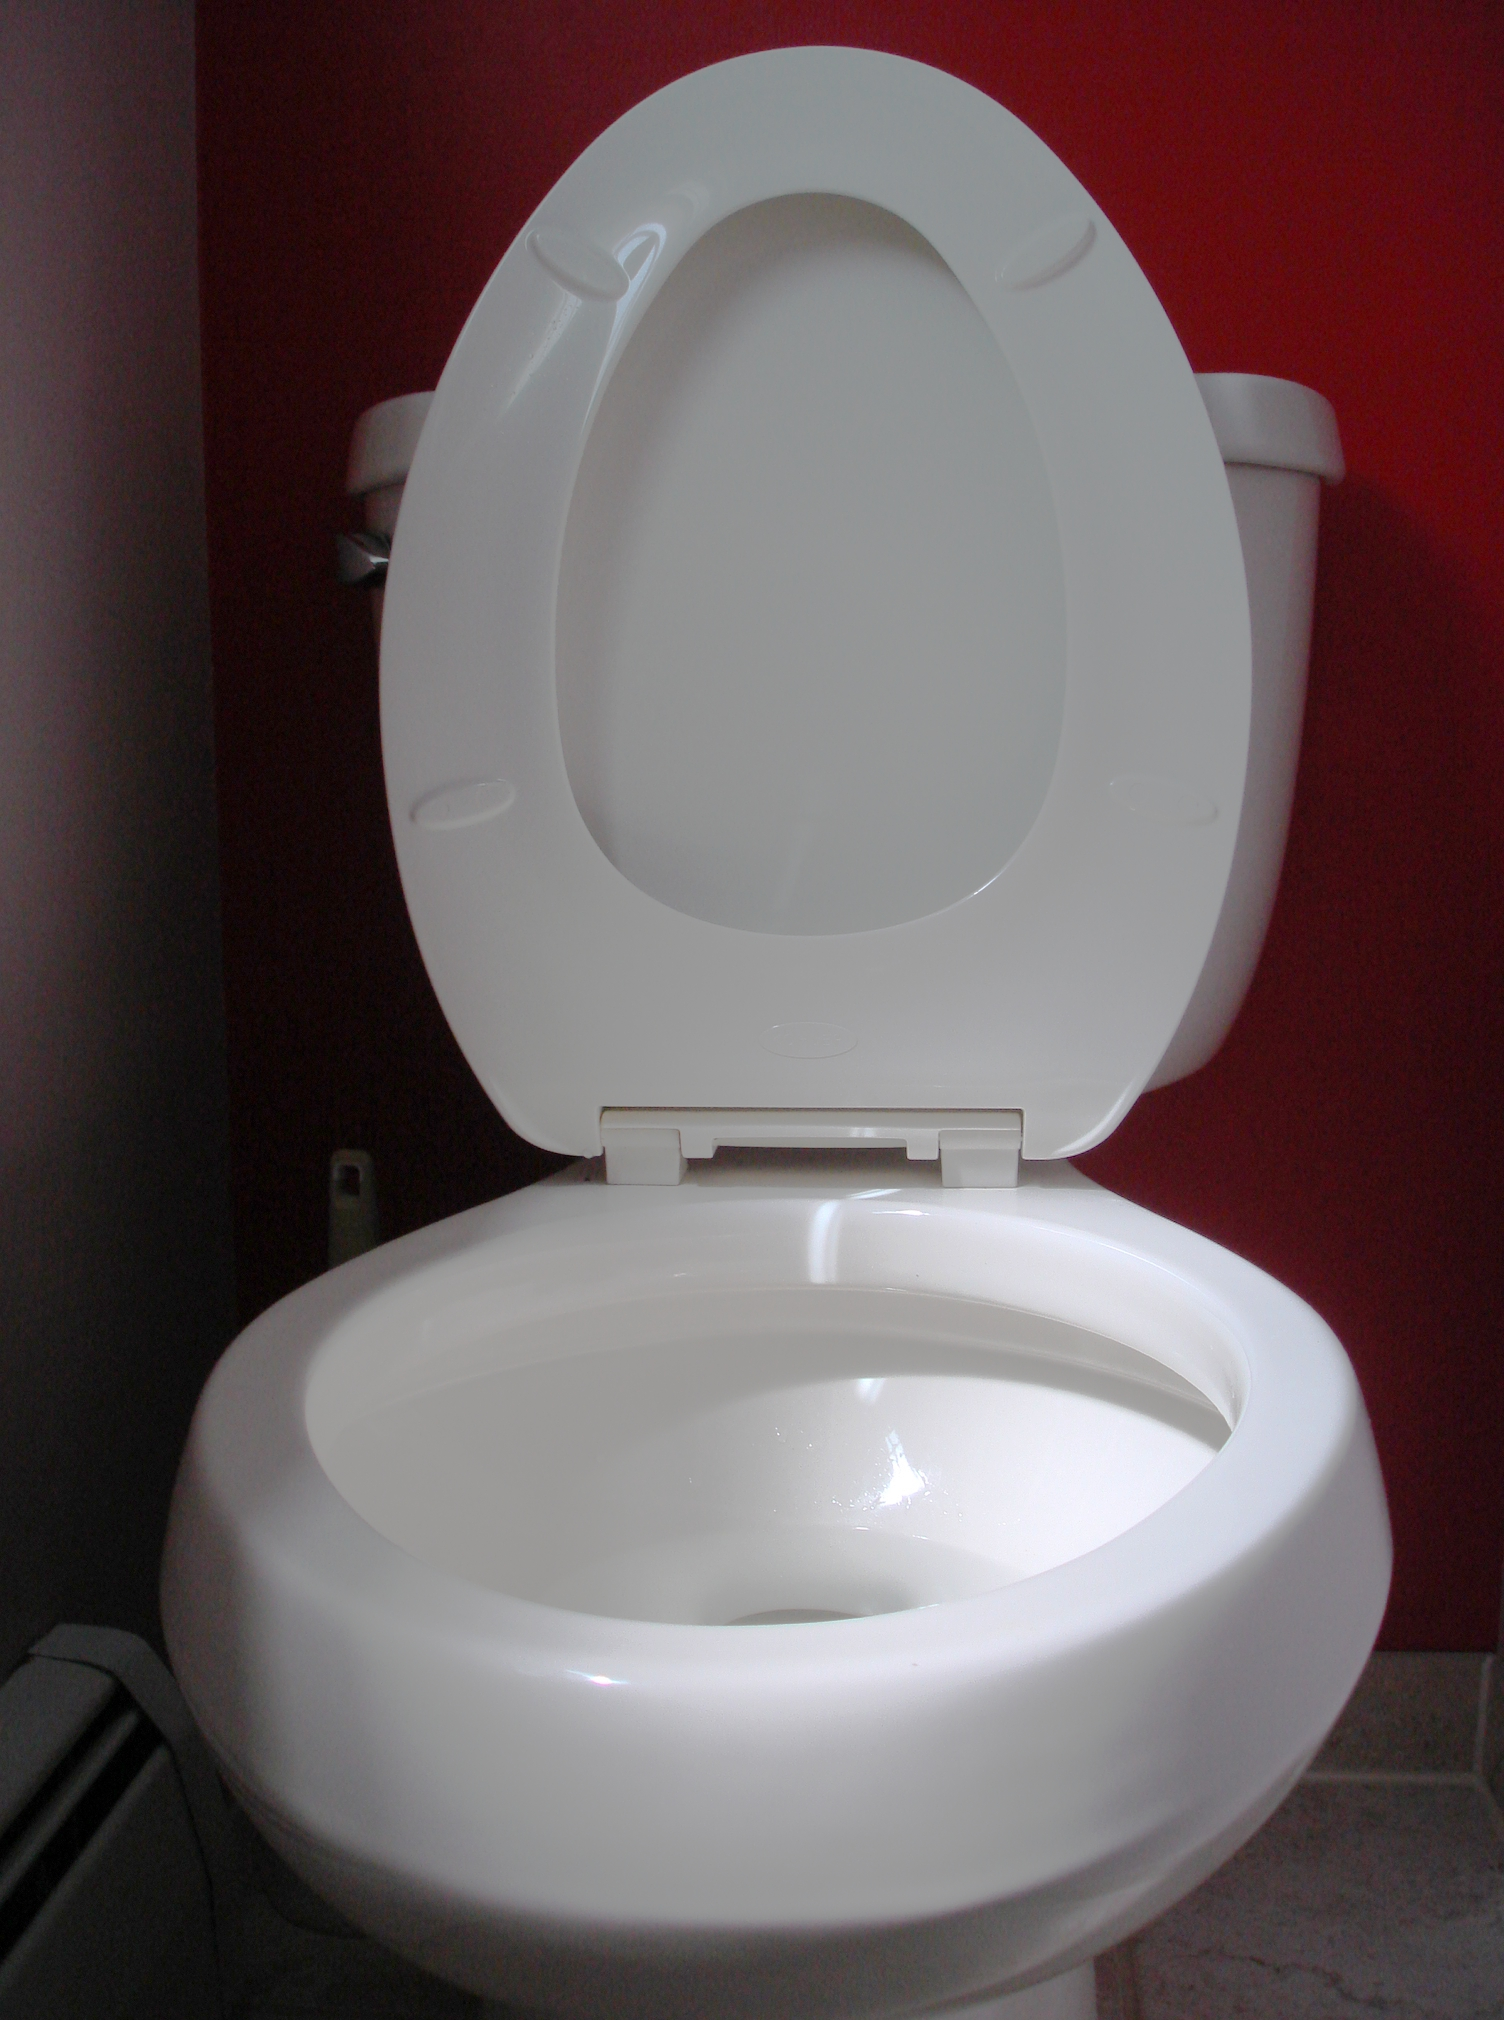 File:Toilet seat up.JPG - Wikimedia Commons